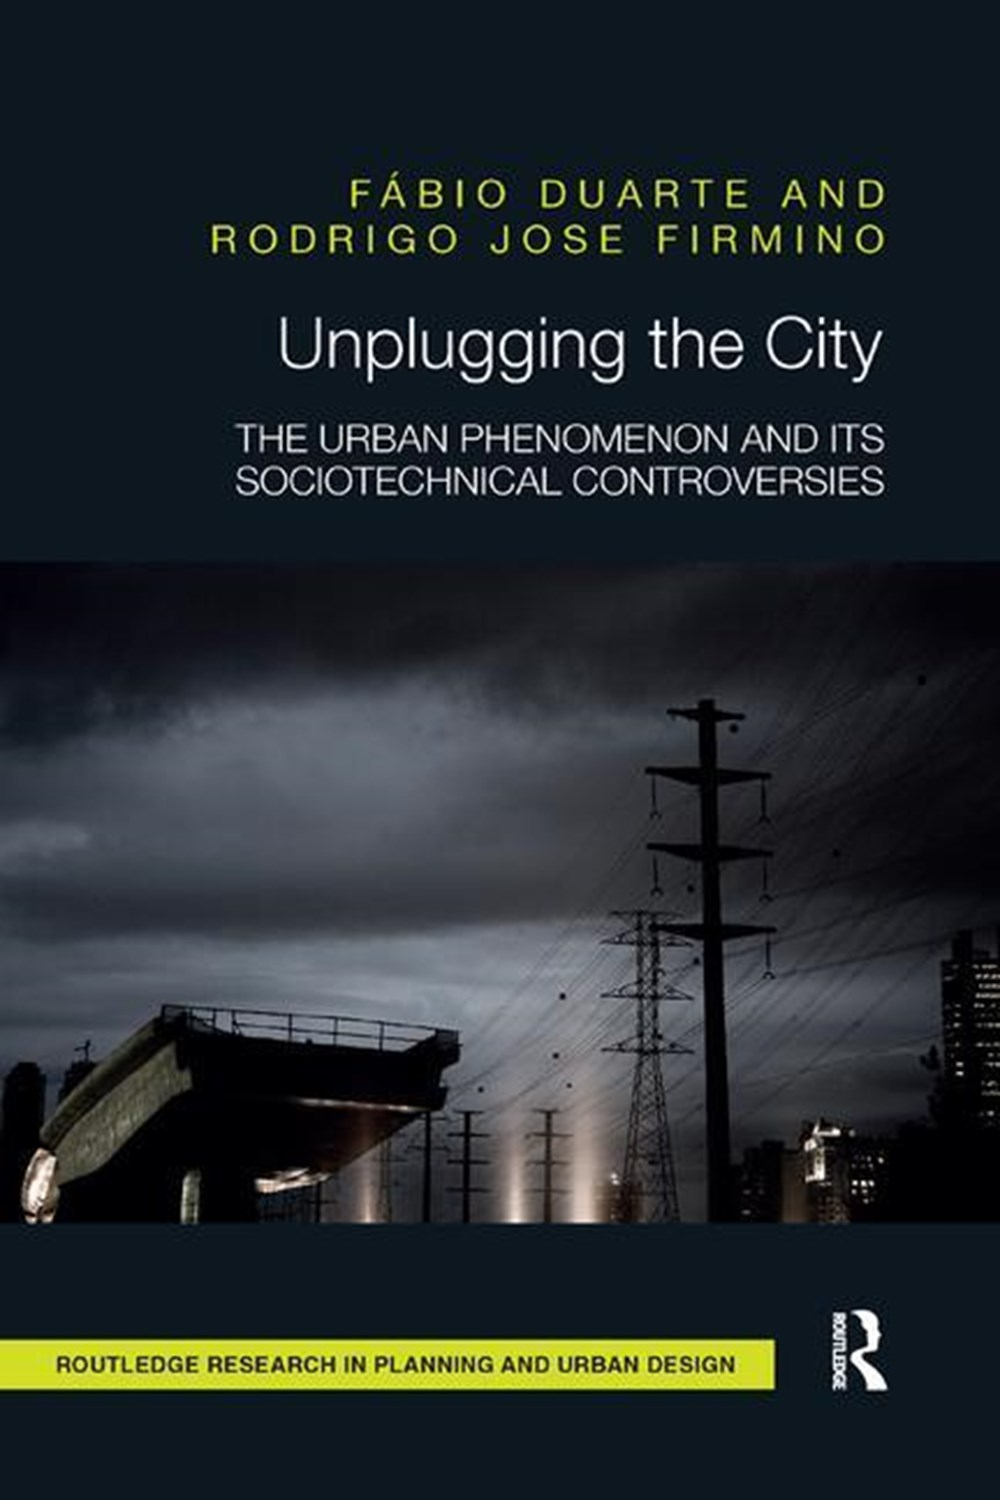 Unplugging the City The Urban Phenomenon and its Sociotechnical Controversies